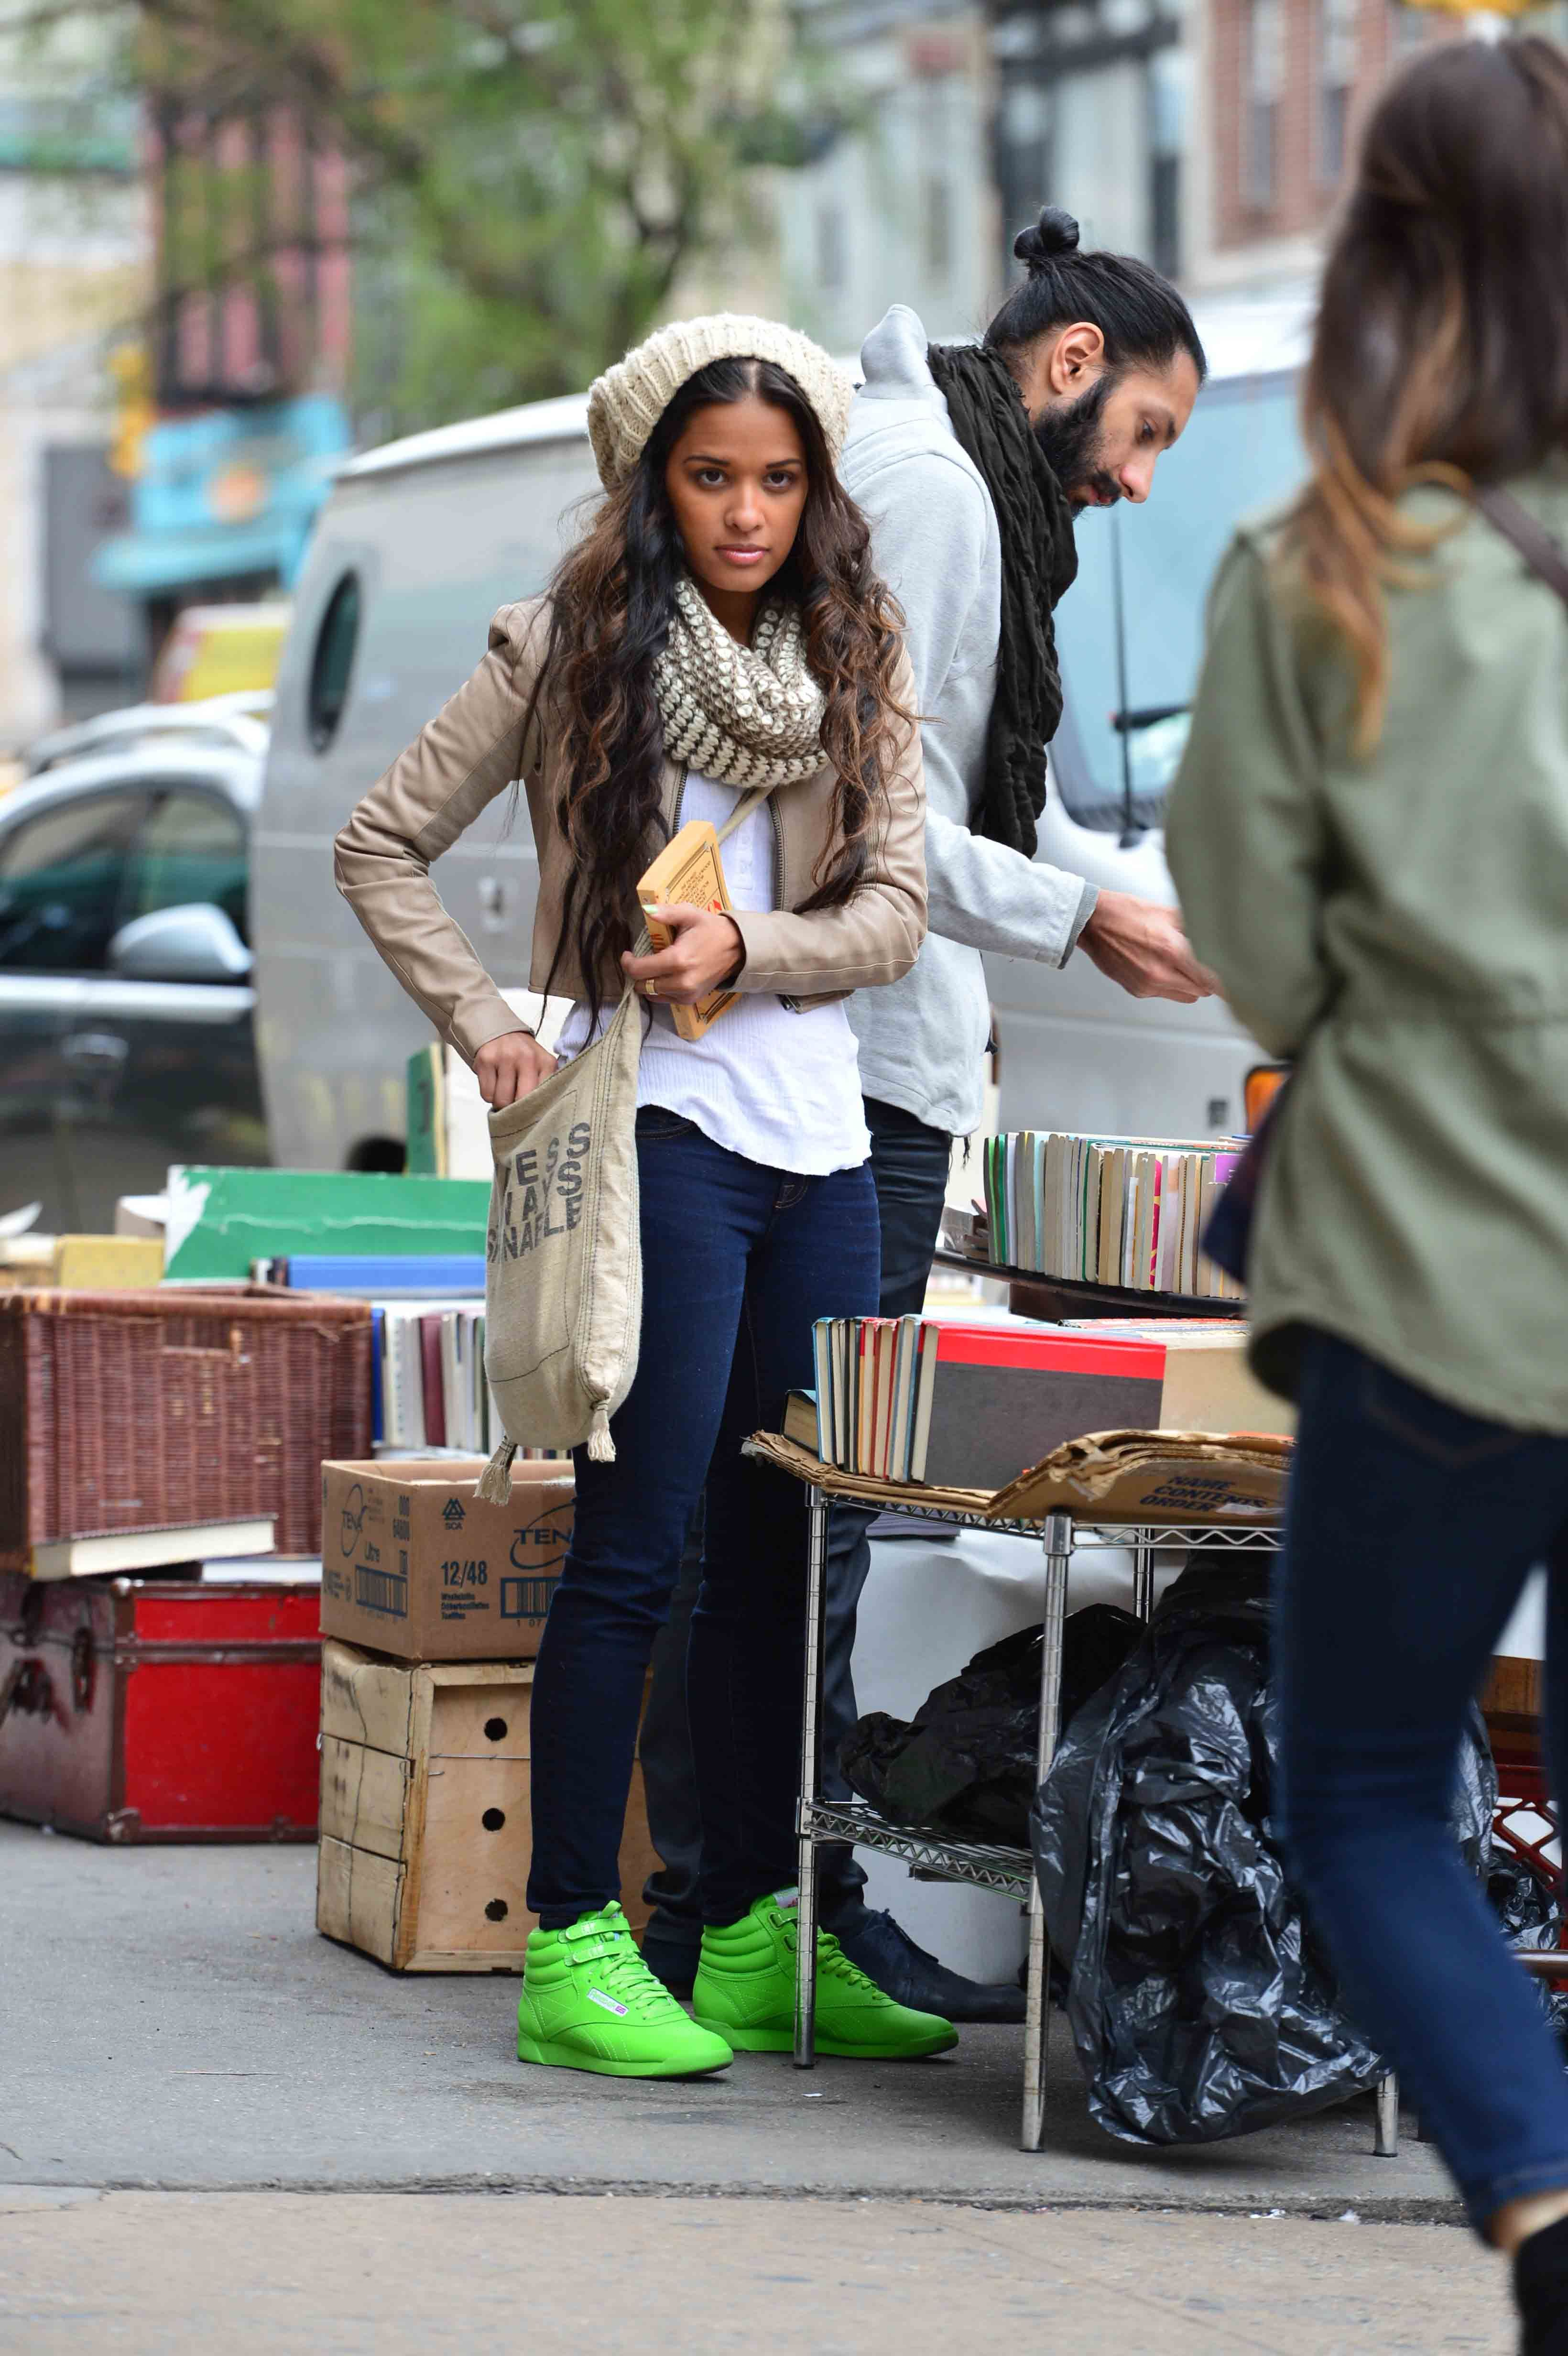 info for ce3df 6fc55 Rocsi Diaz in a pair of lime 5411 s AKA Reebok Freestyle Hi Tops